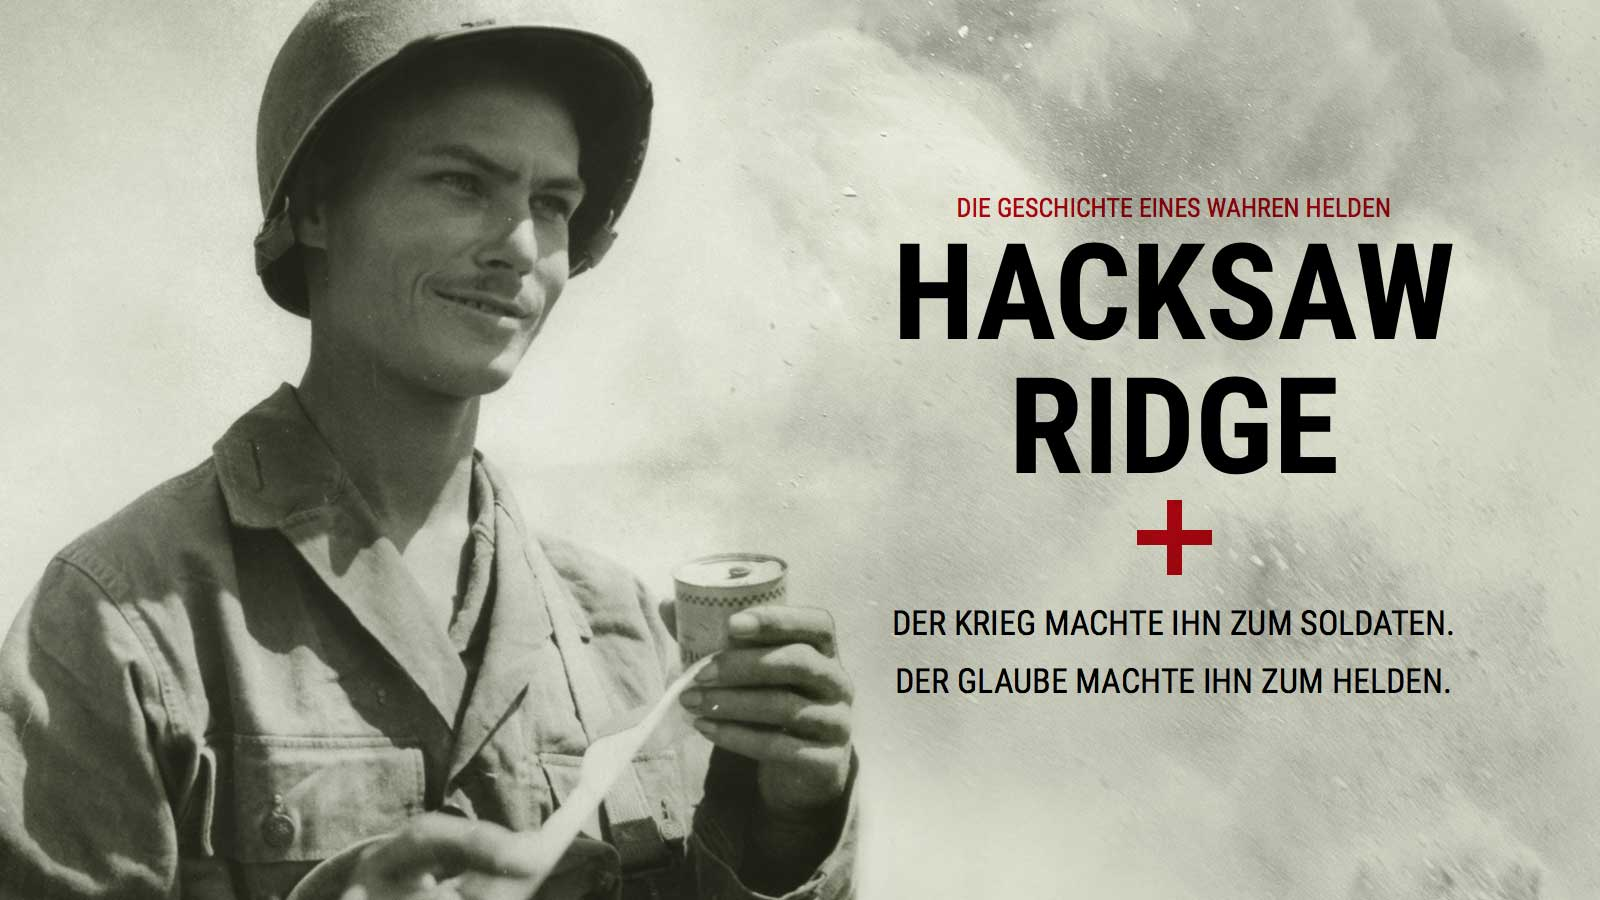 Hacksaw Ridge Full Movie Putlocker